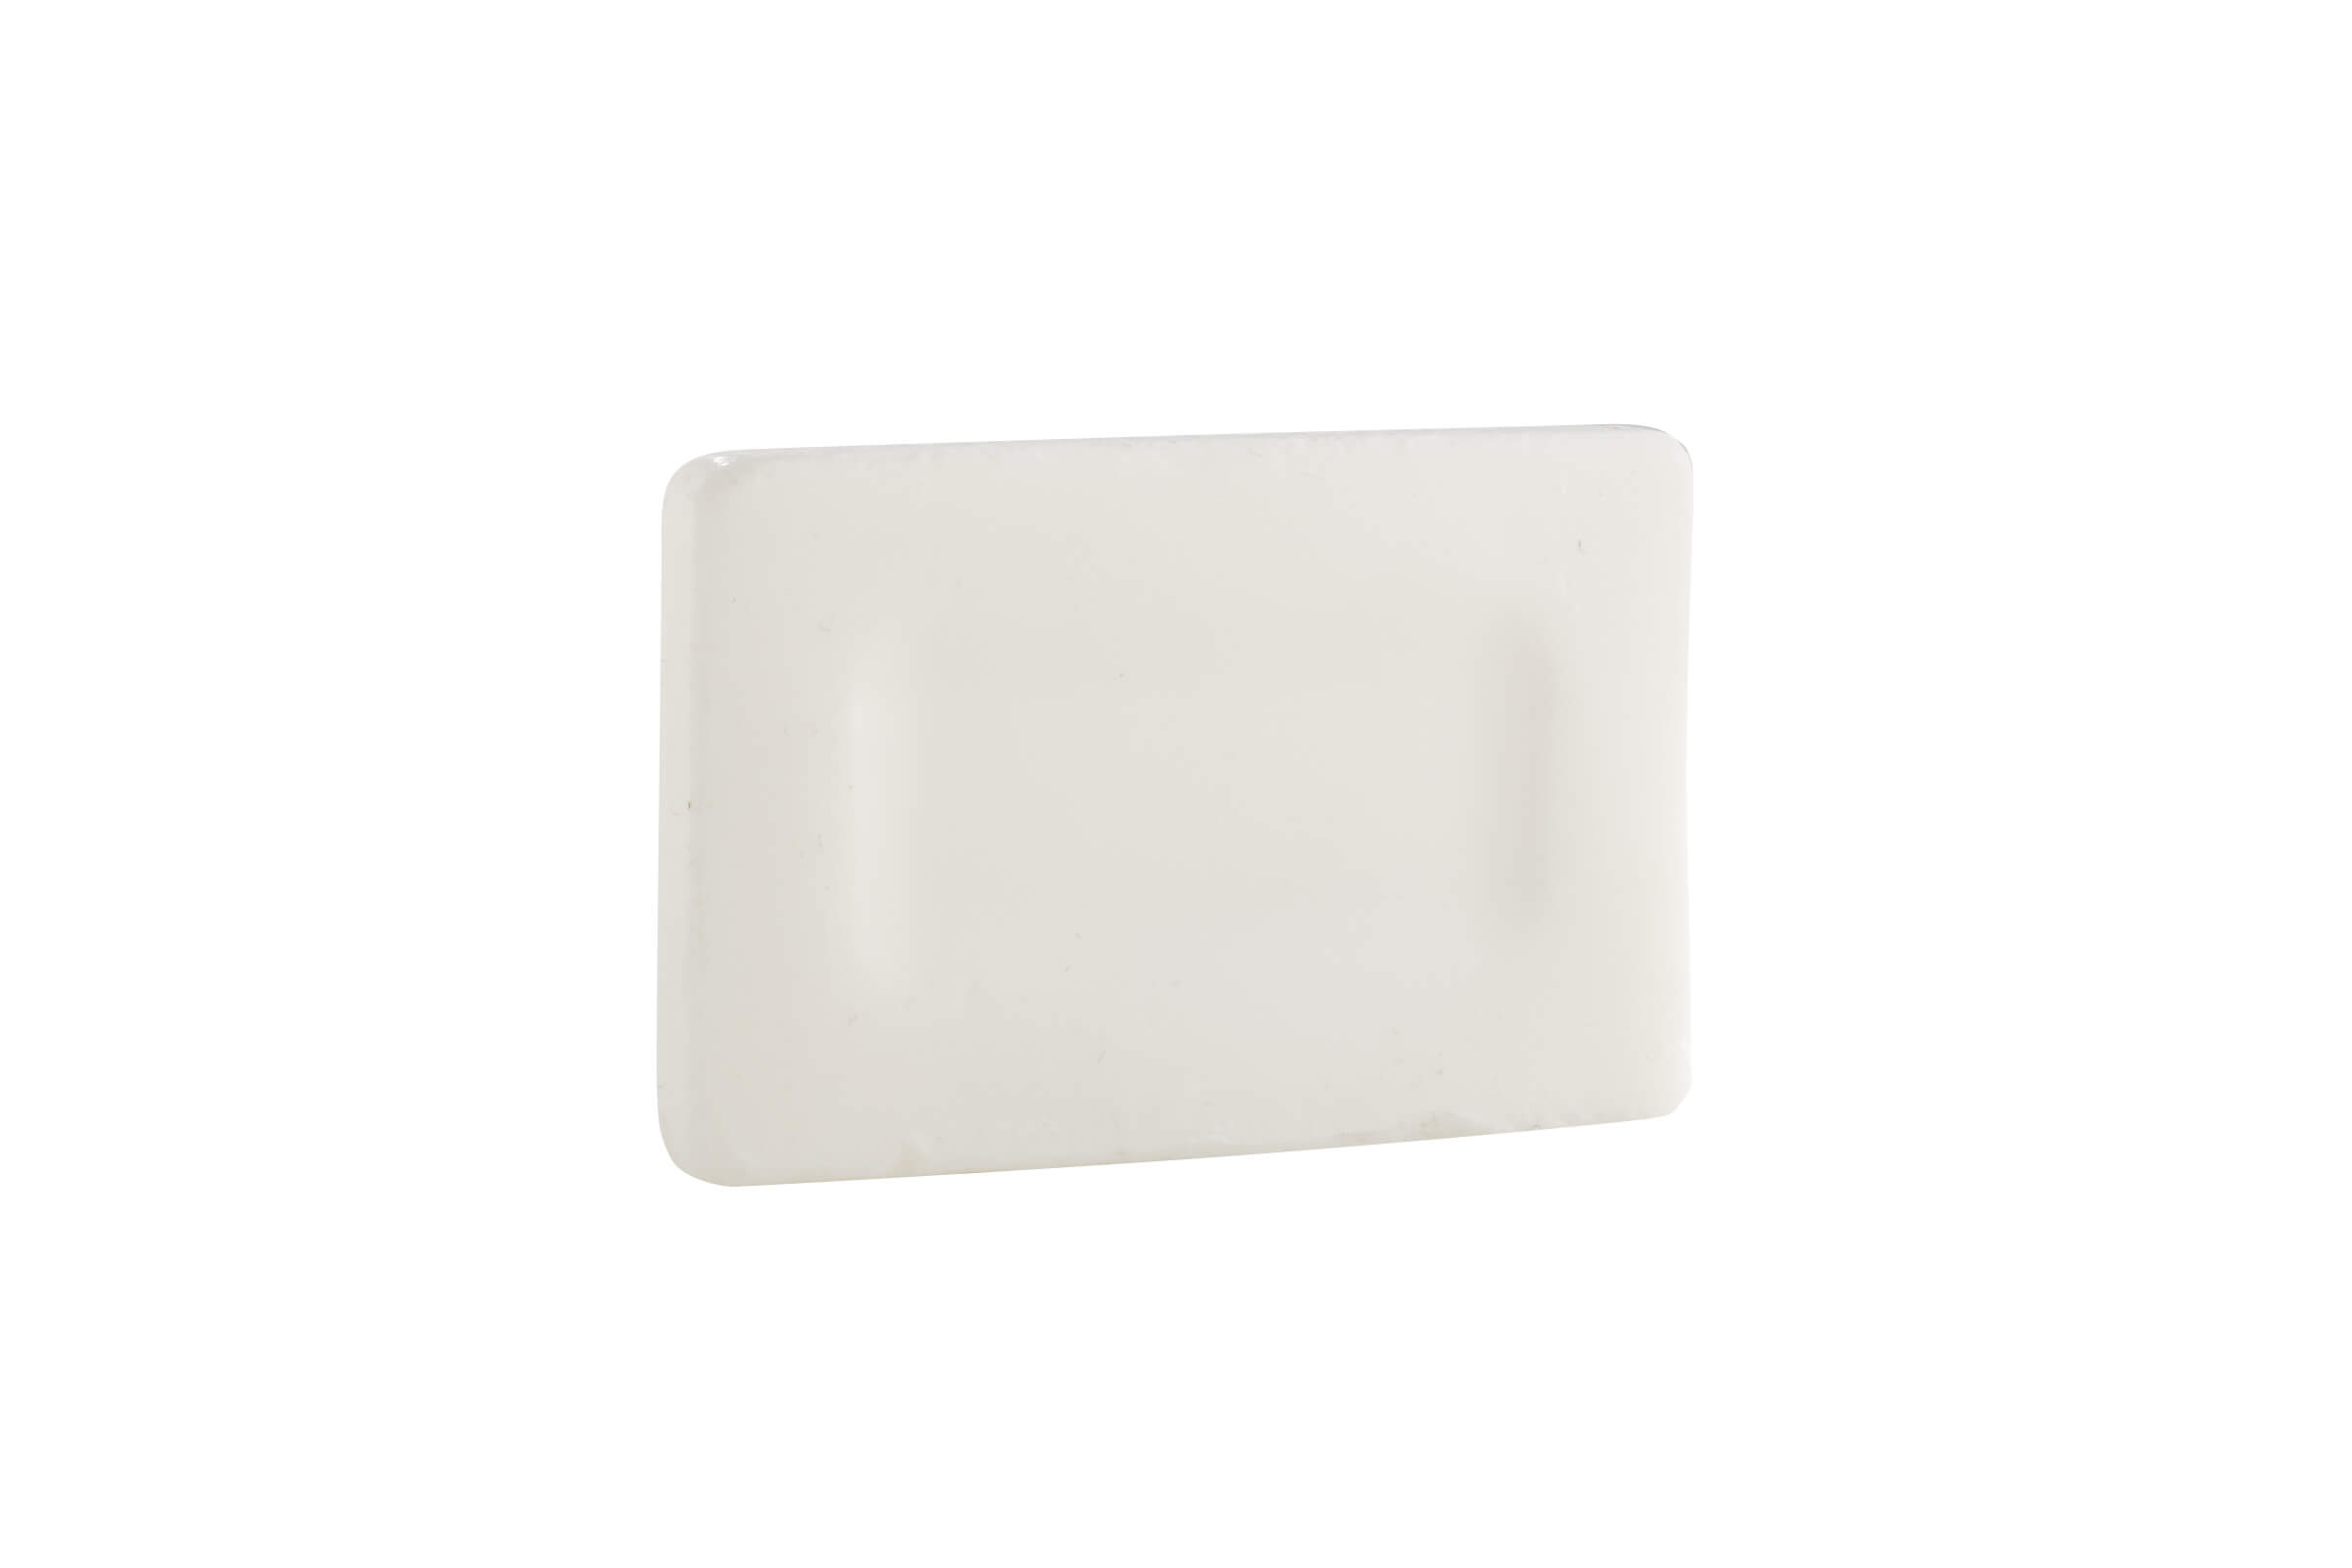 Unwrapped Deodorant Bar Soap